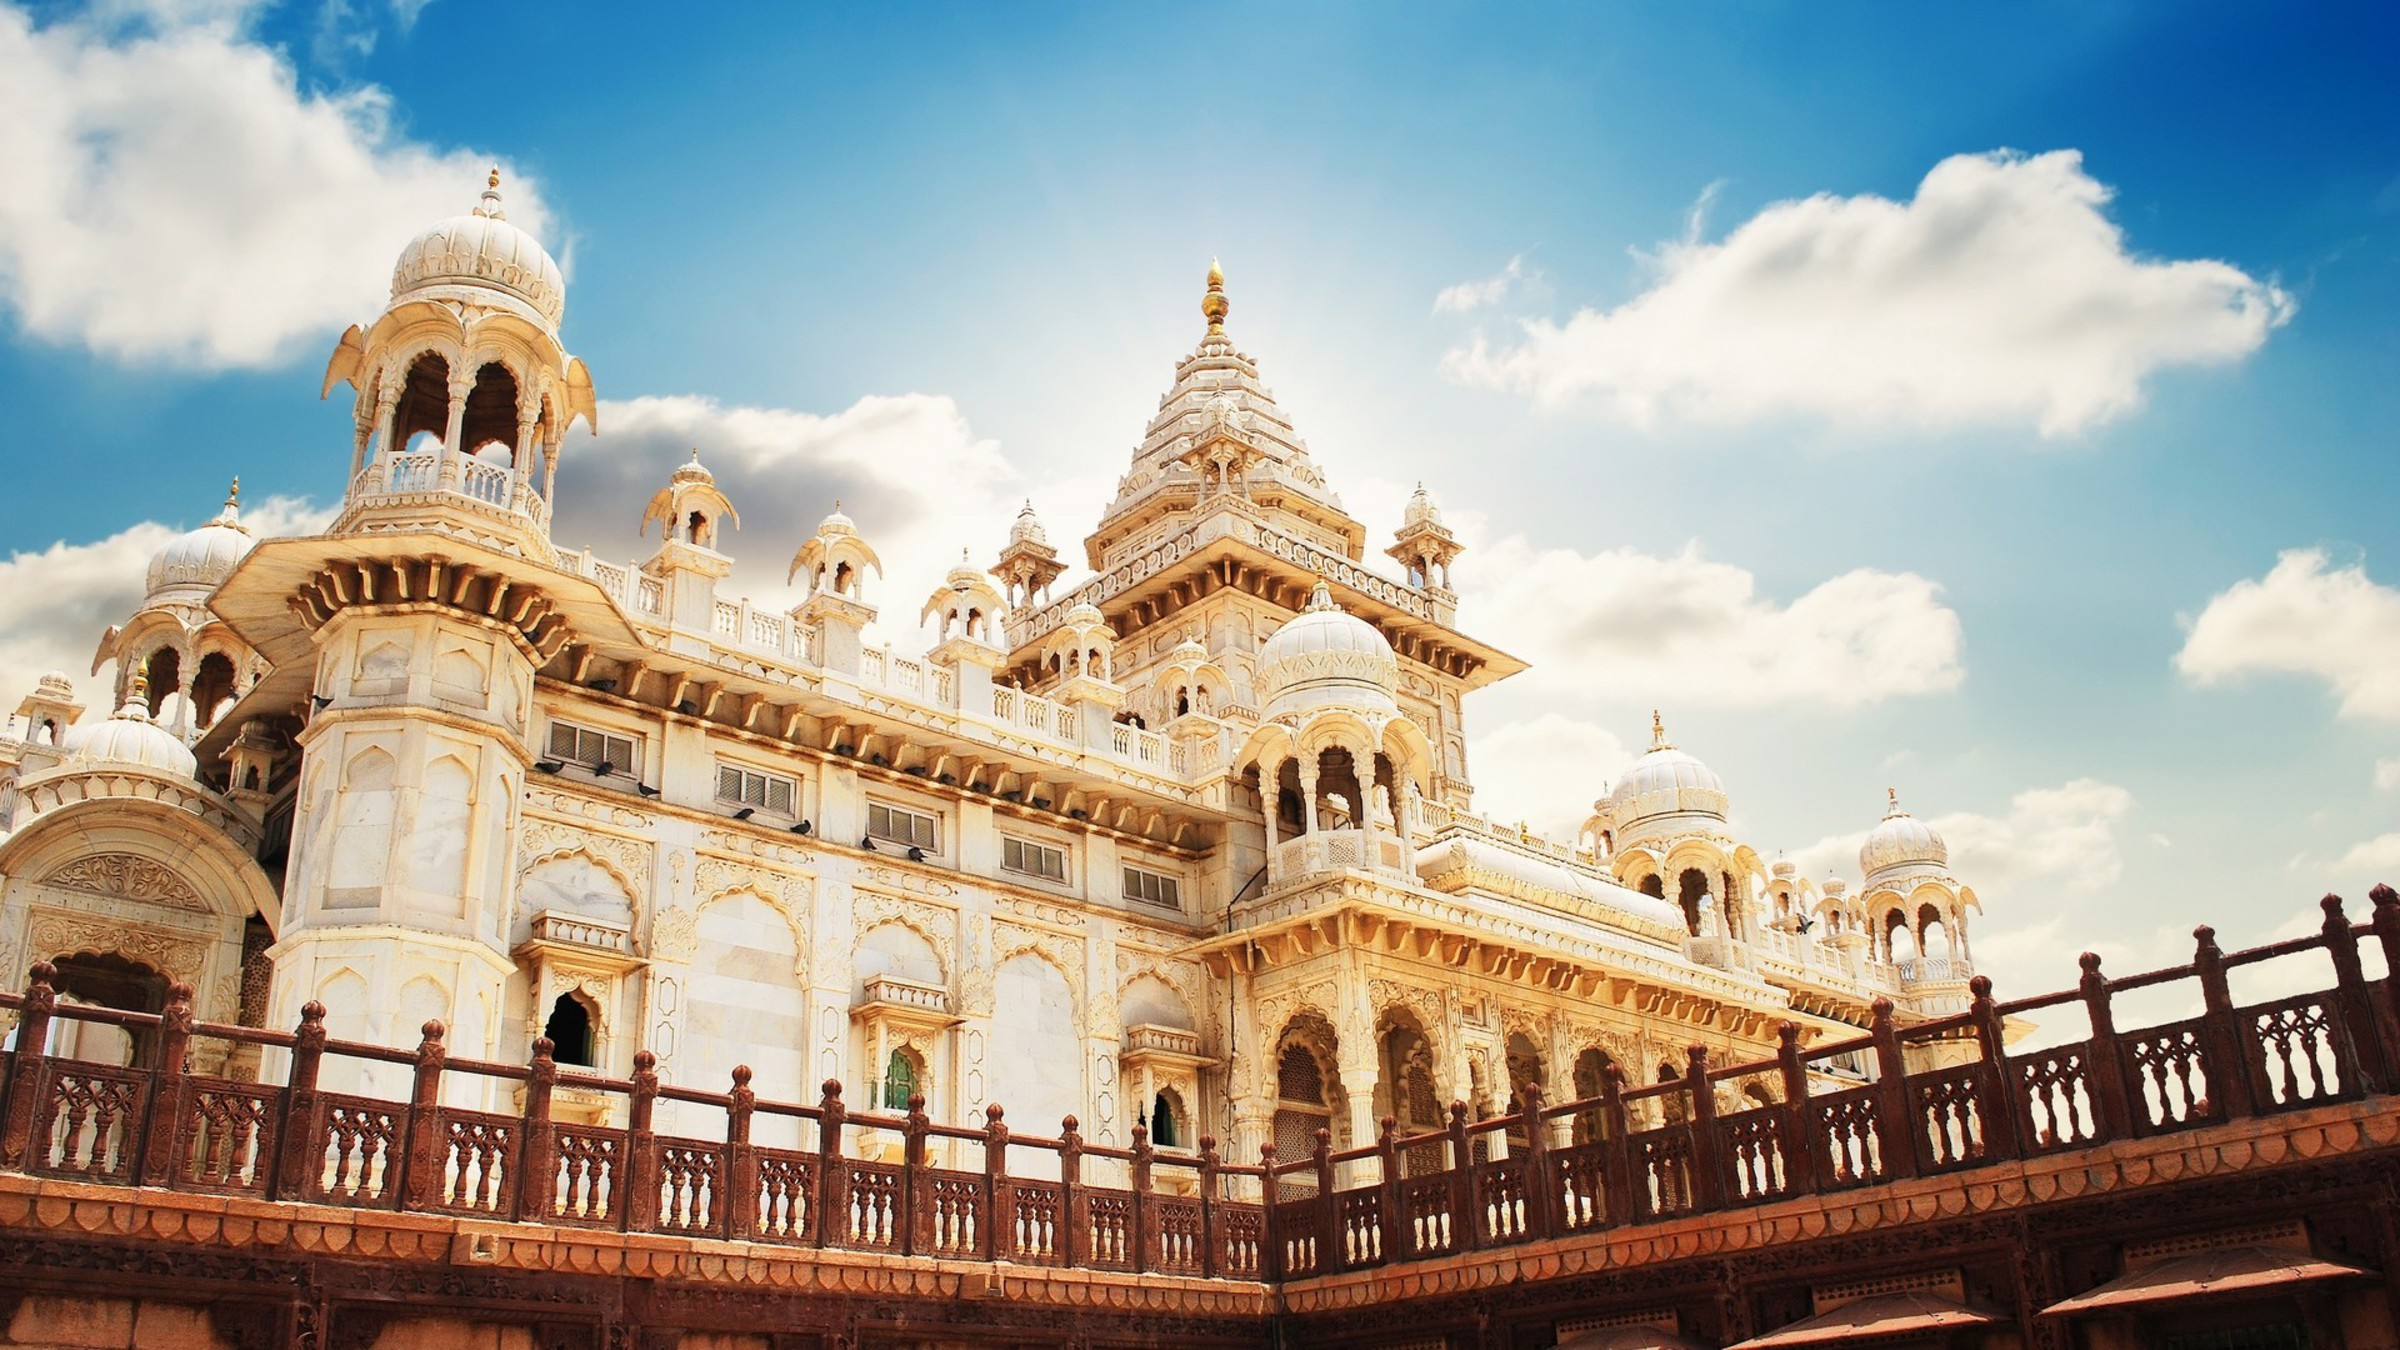 Courtyard Plans How Tourism Saved The Royalty Of Rajasthan By Archana